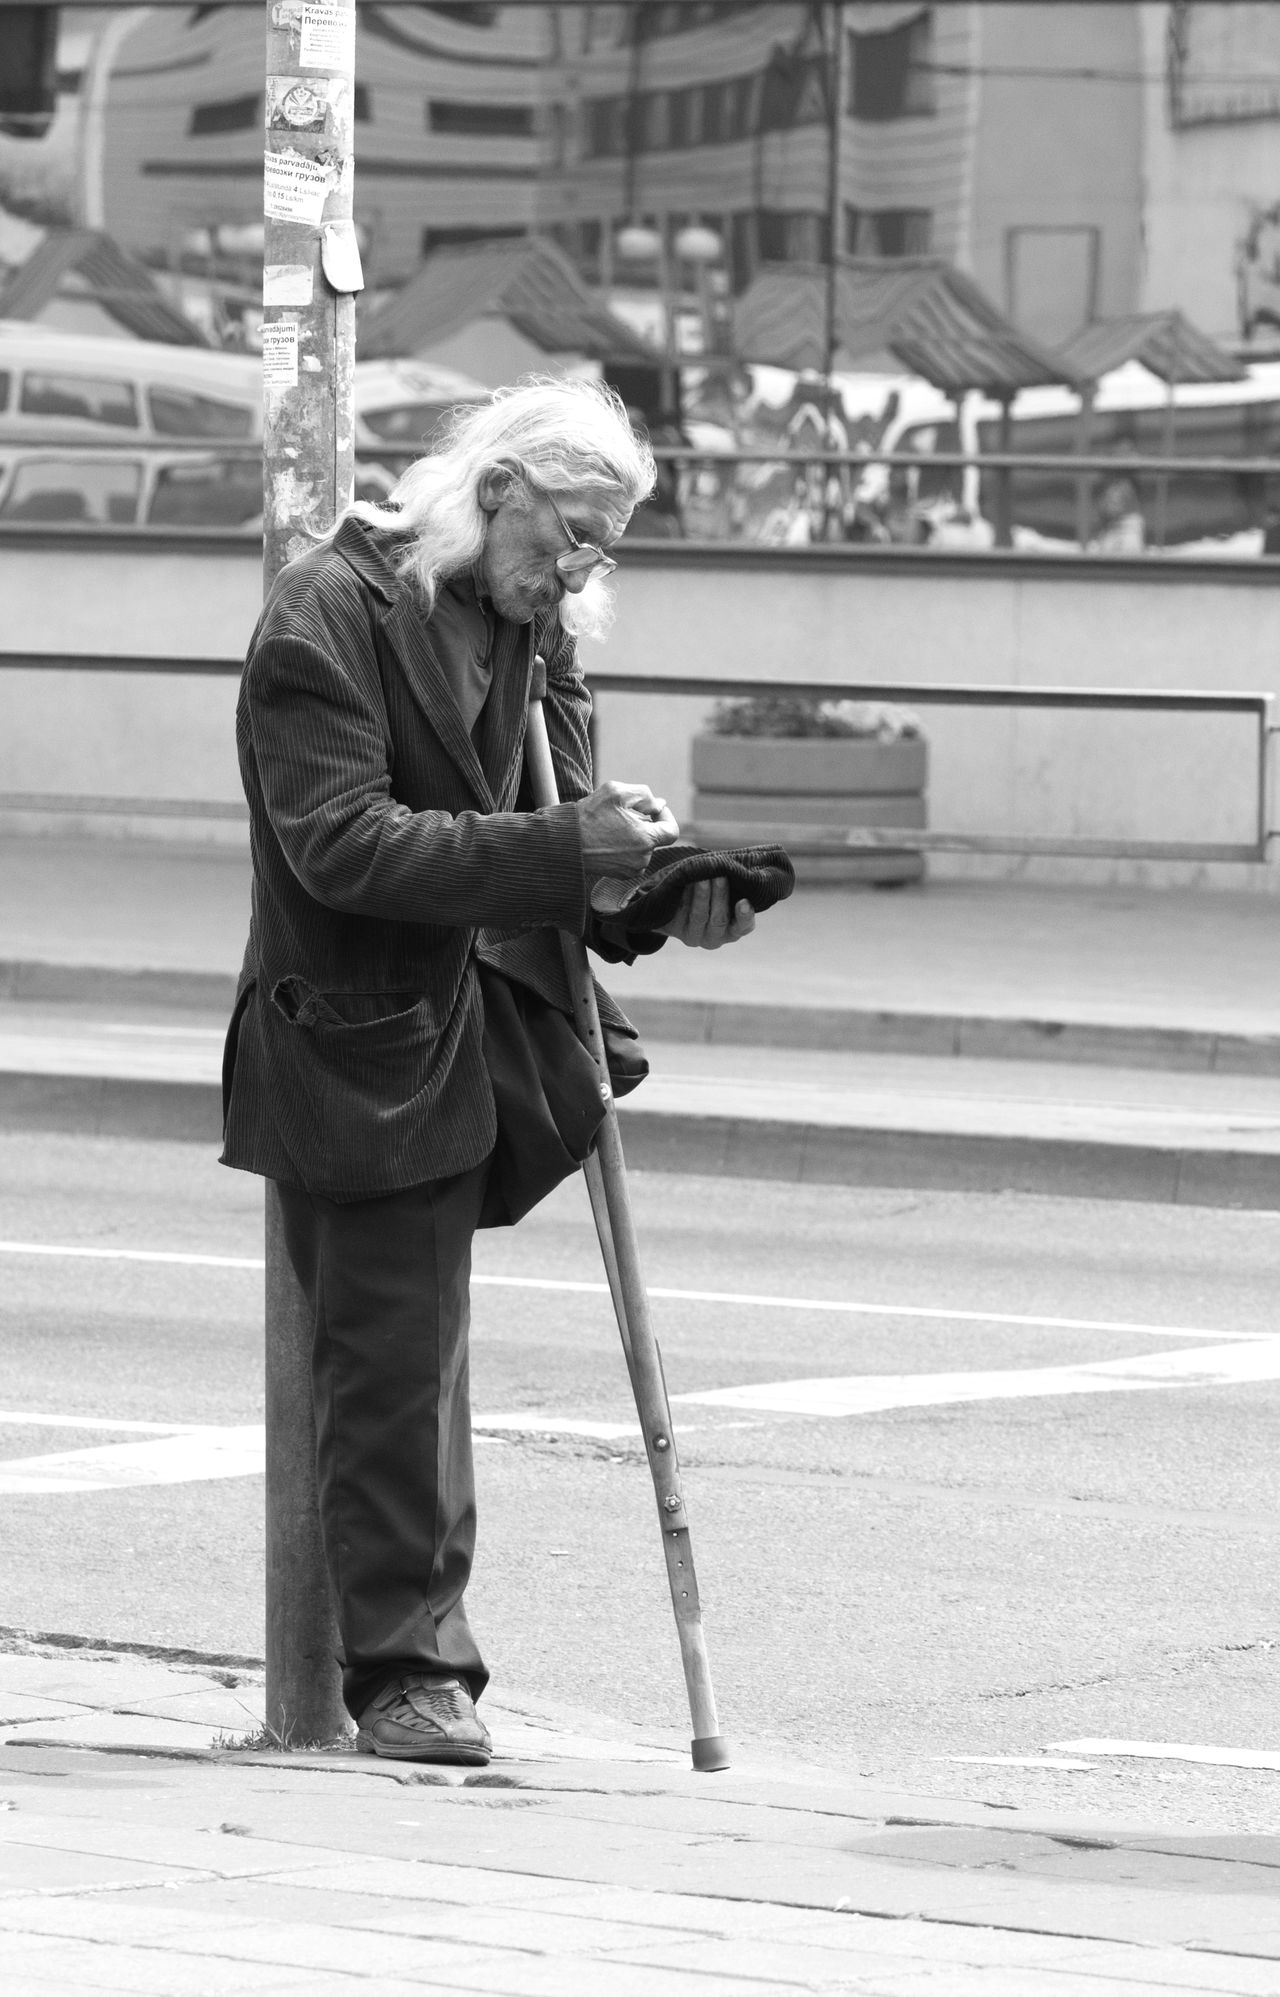 disabled person requests assistance to people Adult Adults Only Black And White Blackandwhite City Day Disabled Person EyeEm Best Shots Full Length Help Help Me Holding Money Old Men One Hand One Person Outdoors People Real People Society Streetphotography Warm Clothing Candid The Portraitist - 2017 EyeEm Awards The Street Photographer - 2017 EyeEm Awards